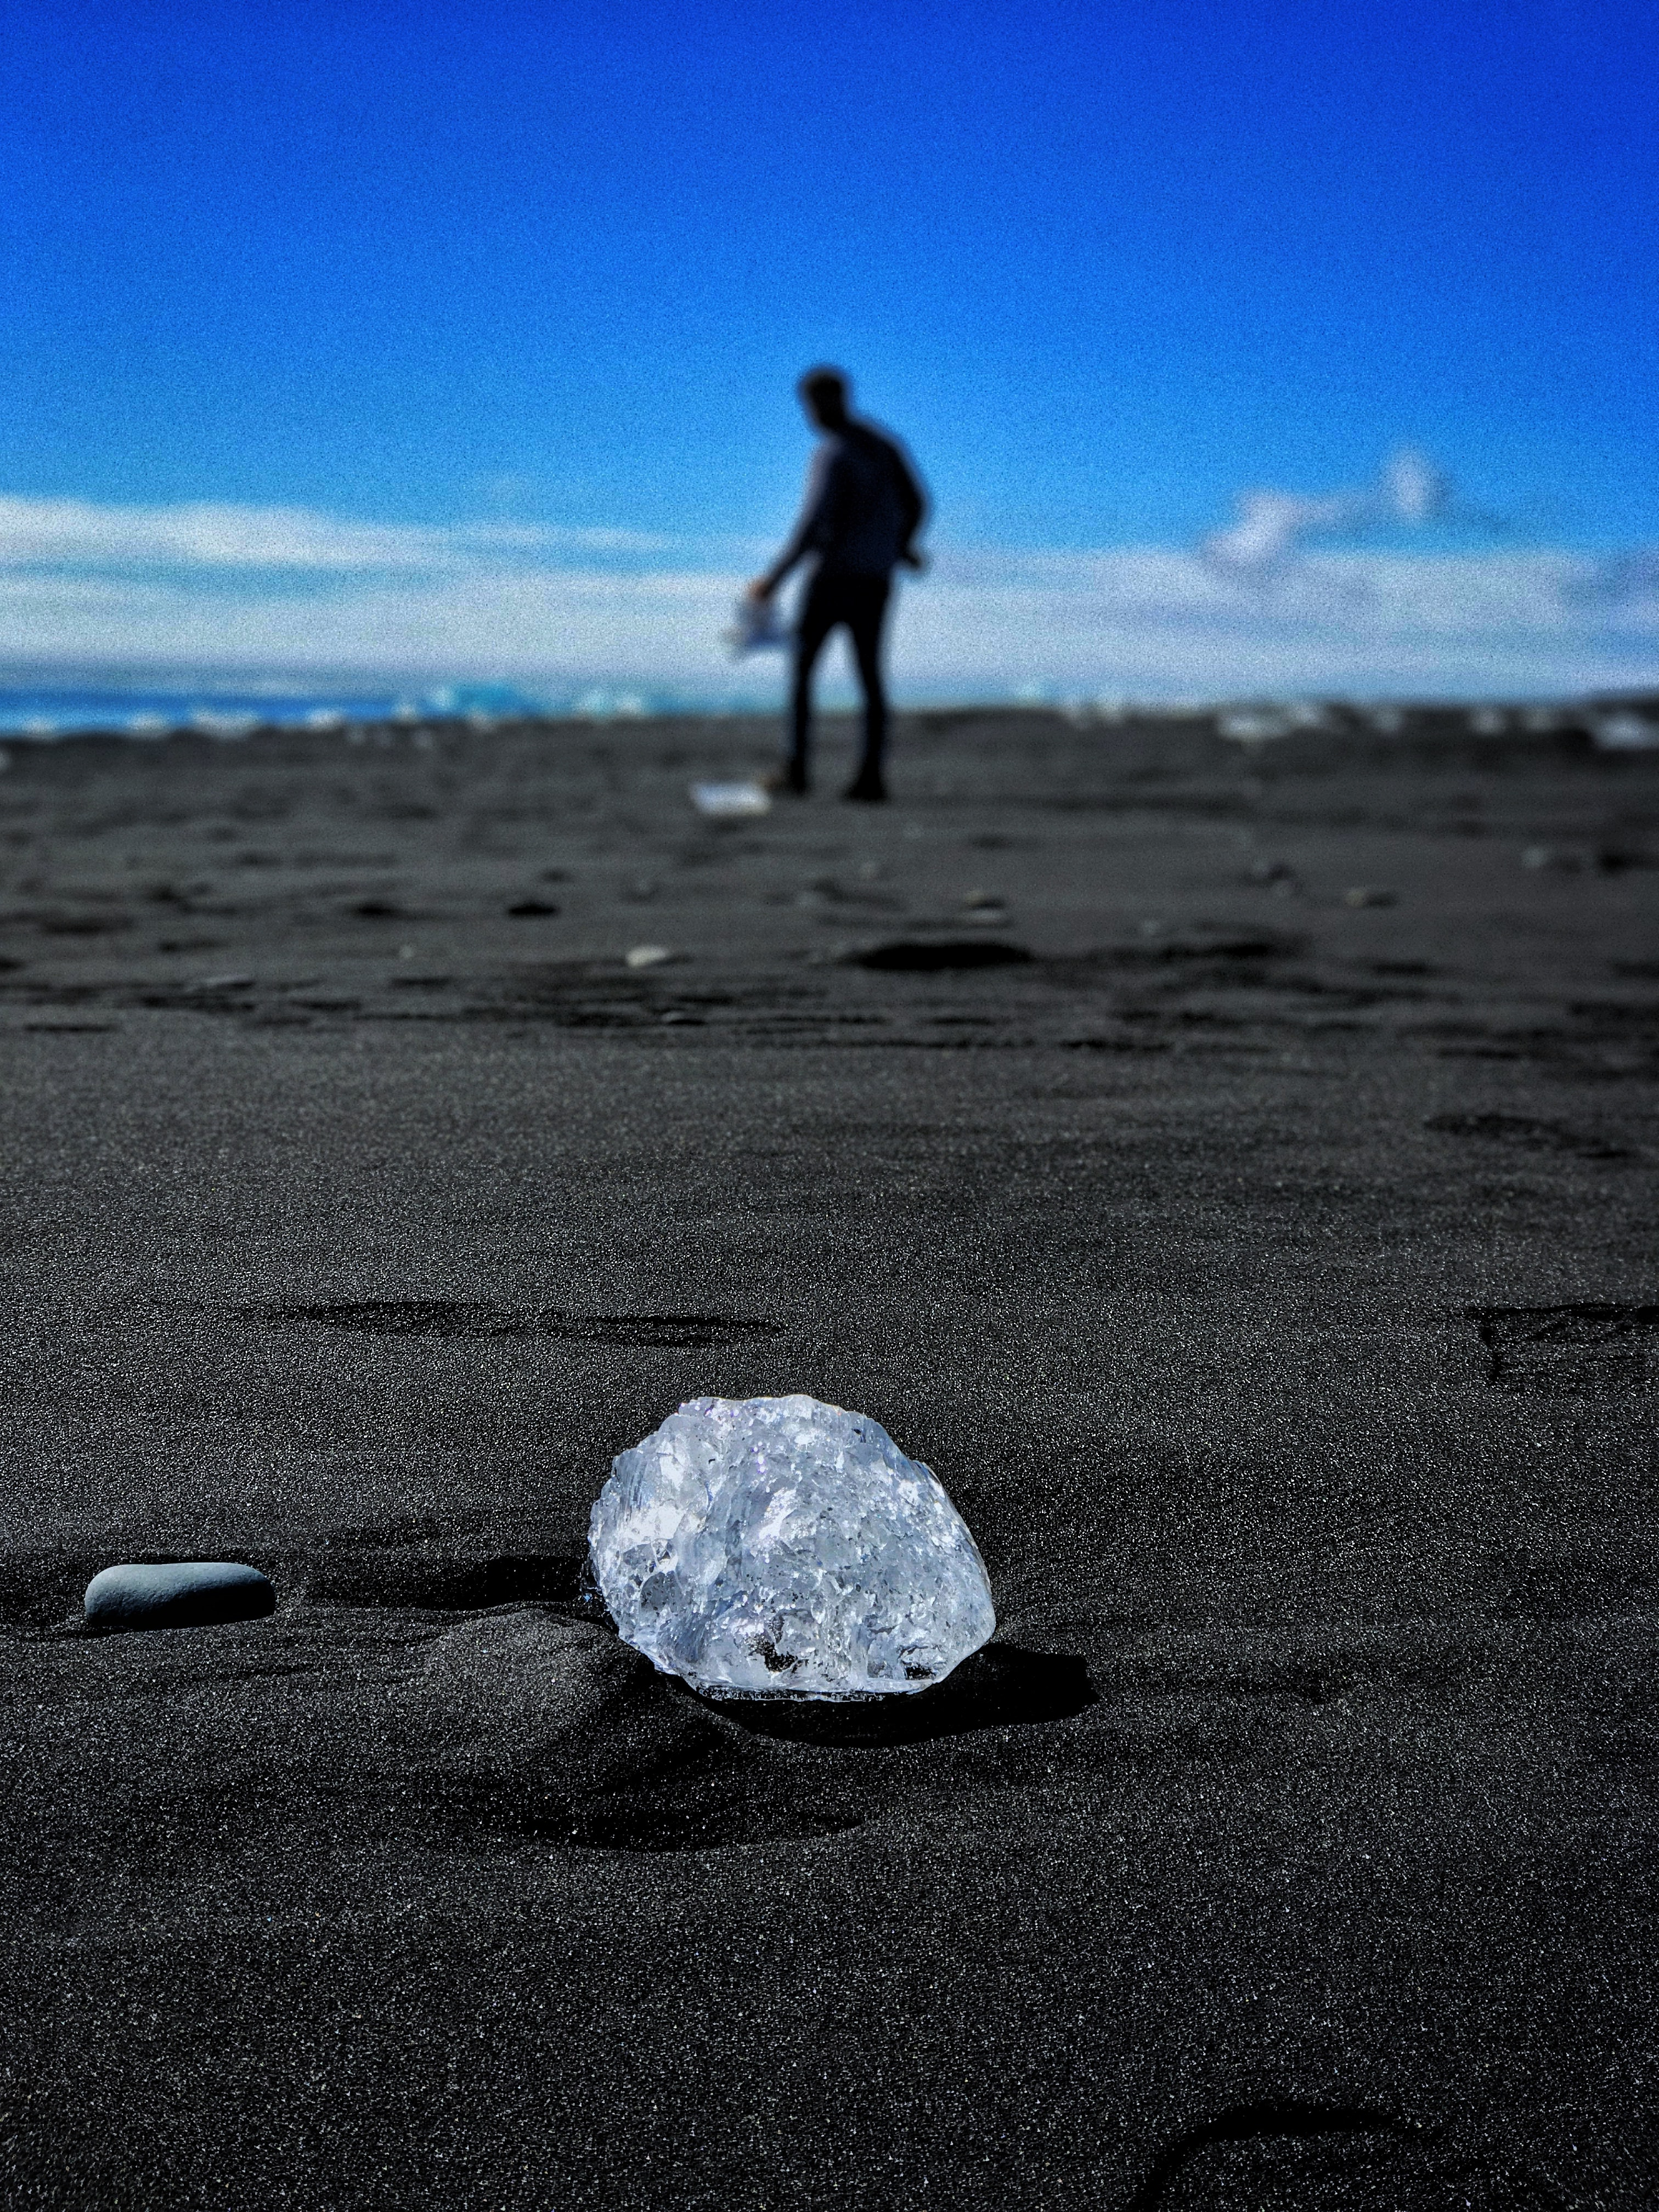 round clear gem stone on ground